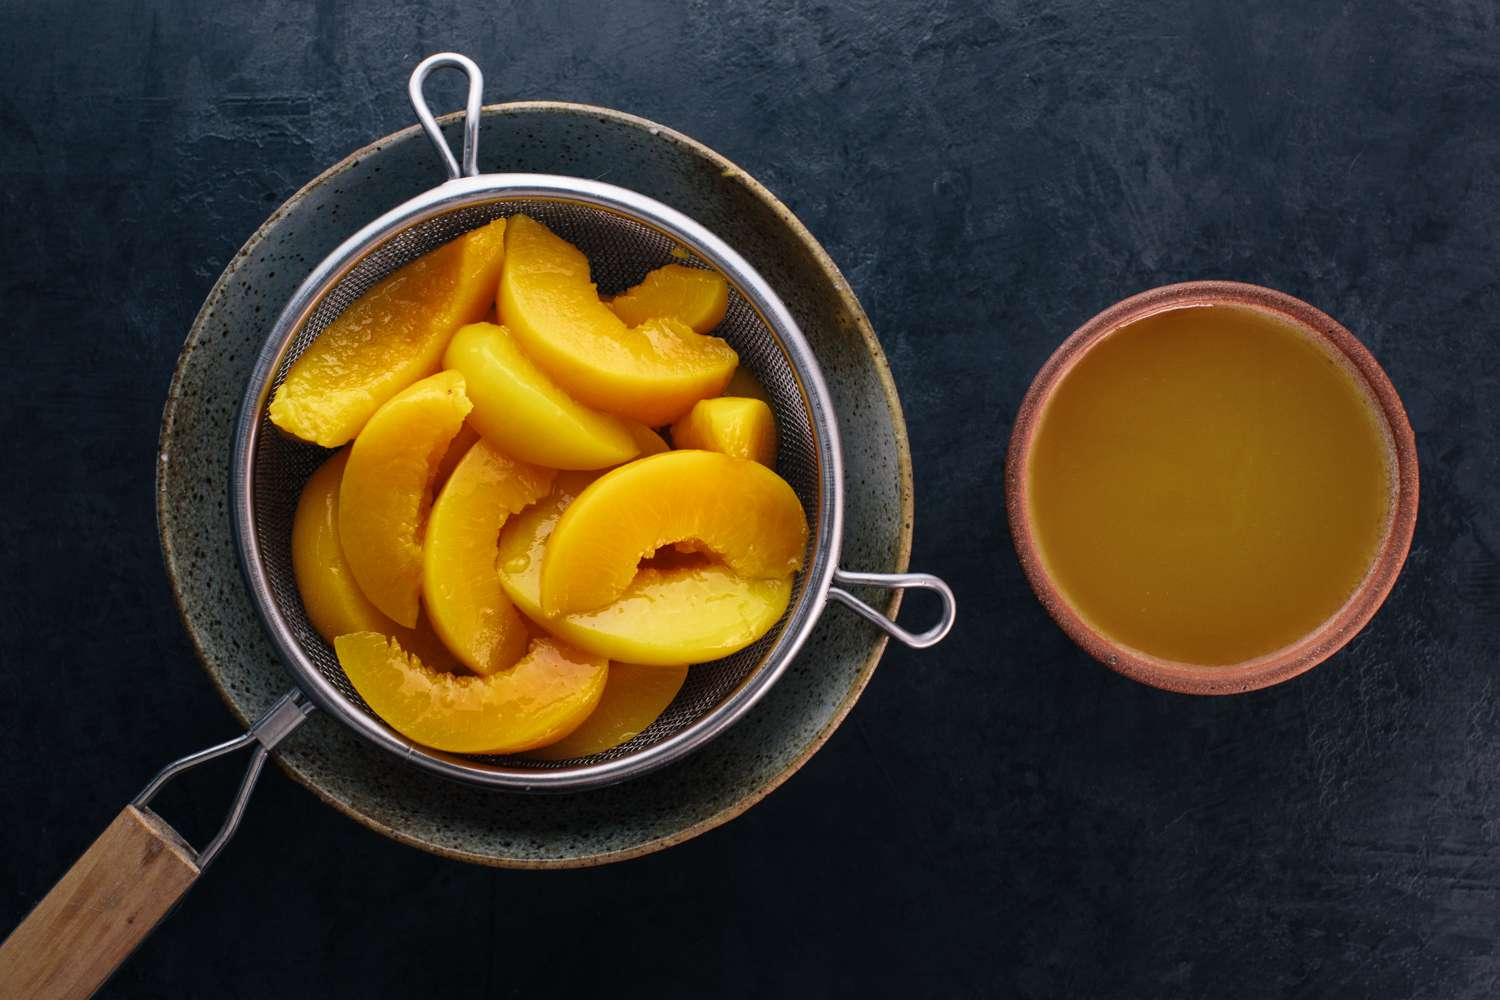 Drain the peaches, reserving the syrup